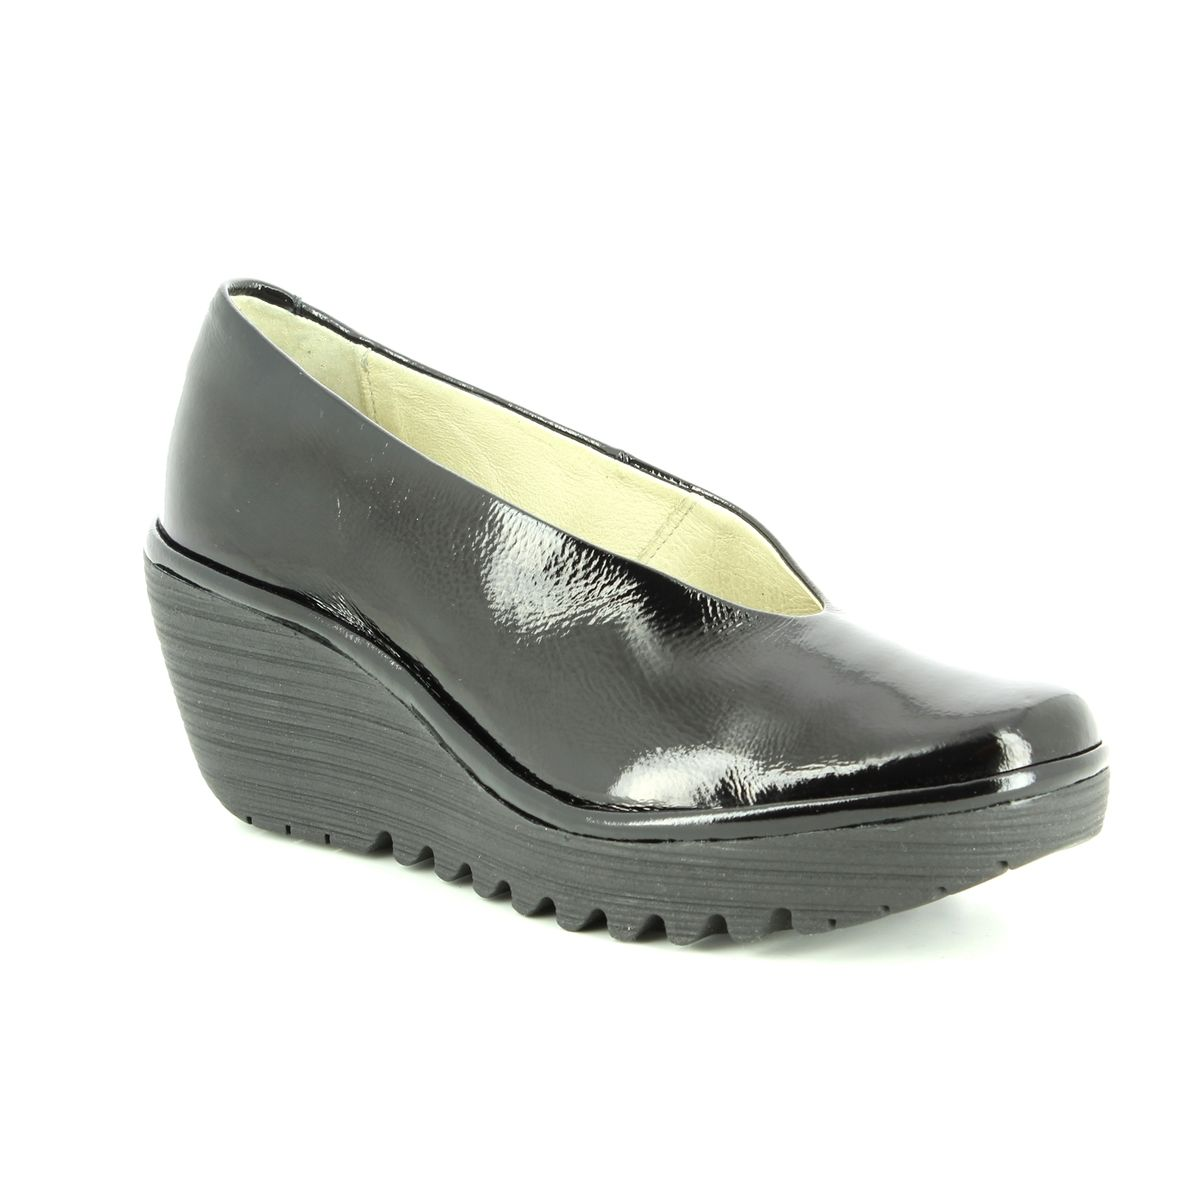 Fly Yaz London Shoes Patent 207 Wedge P500025 Black 5rW5w0xn8p